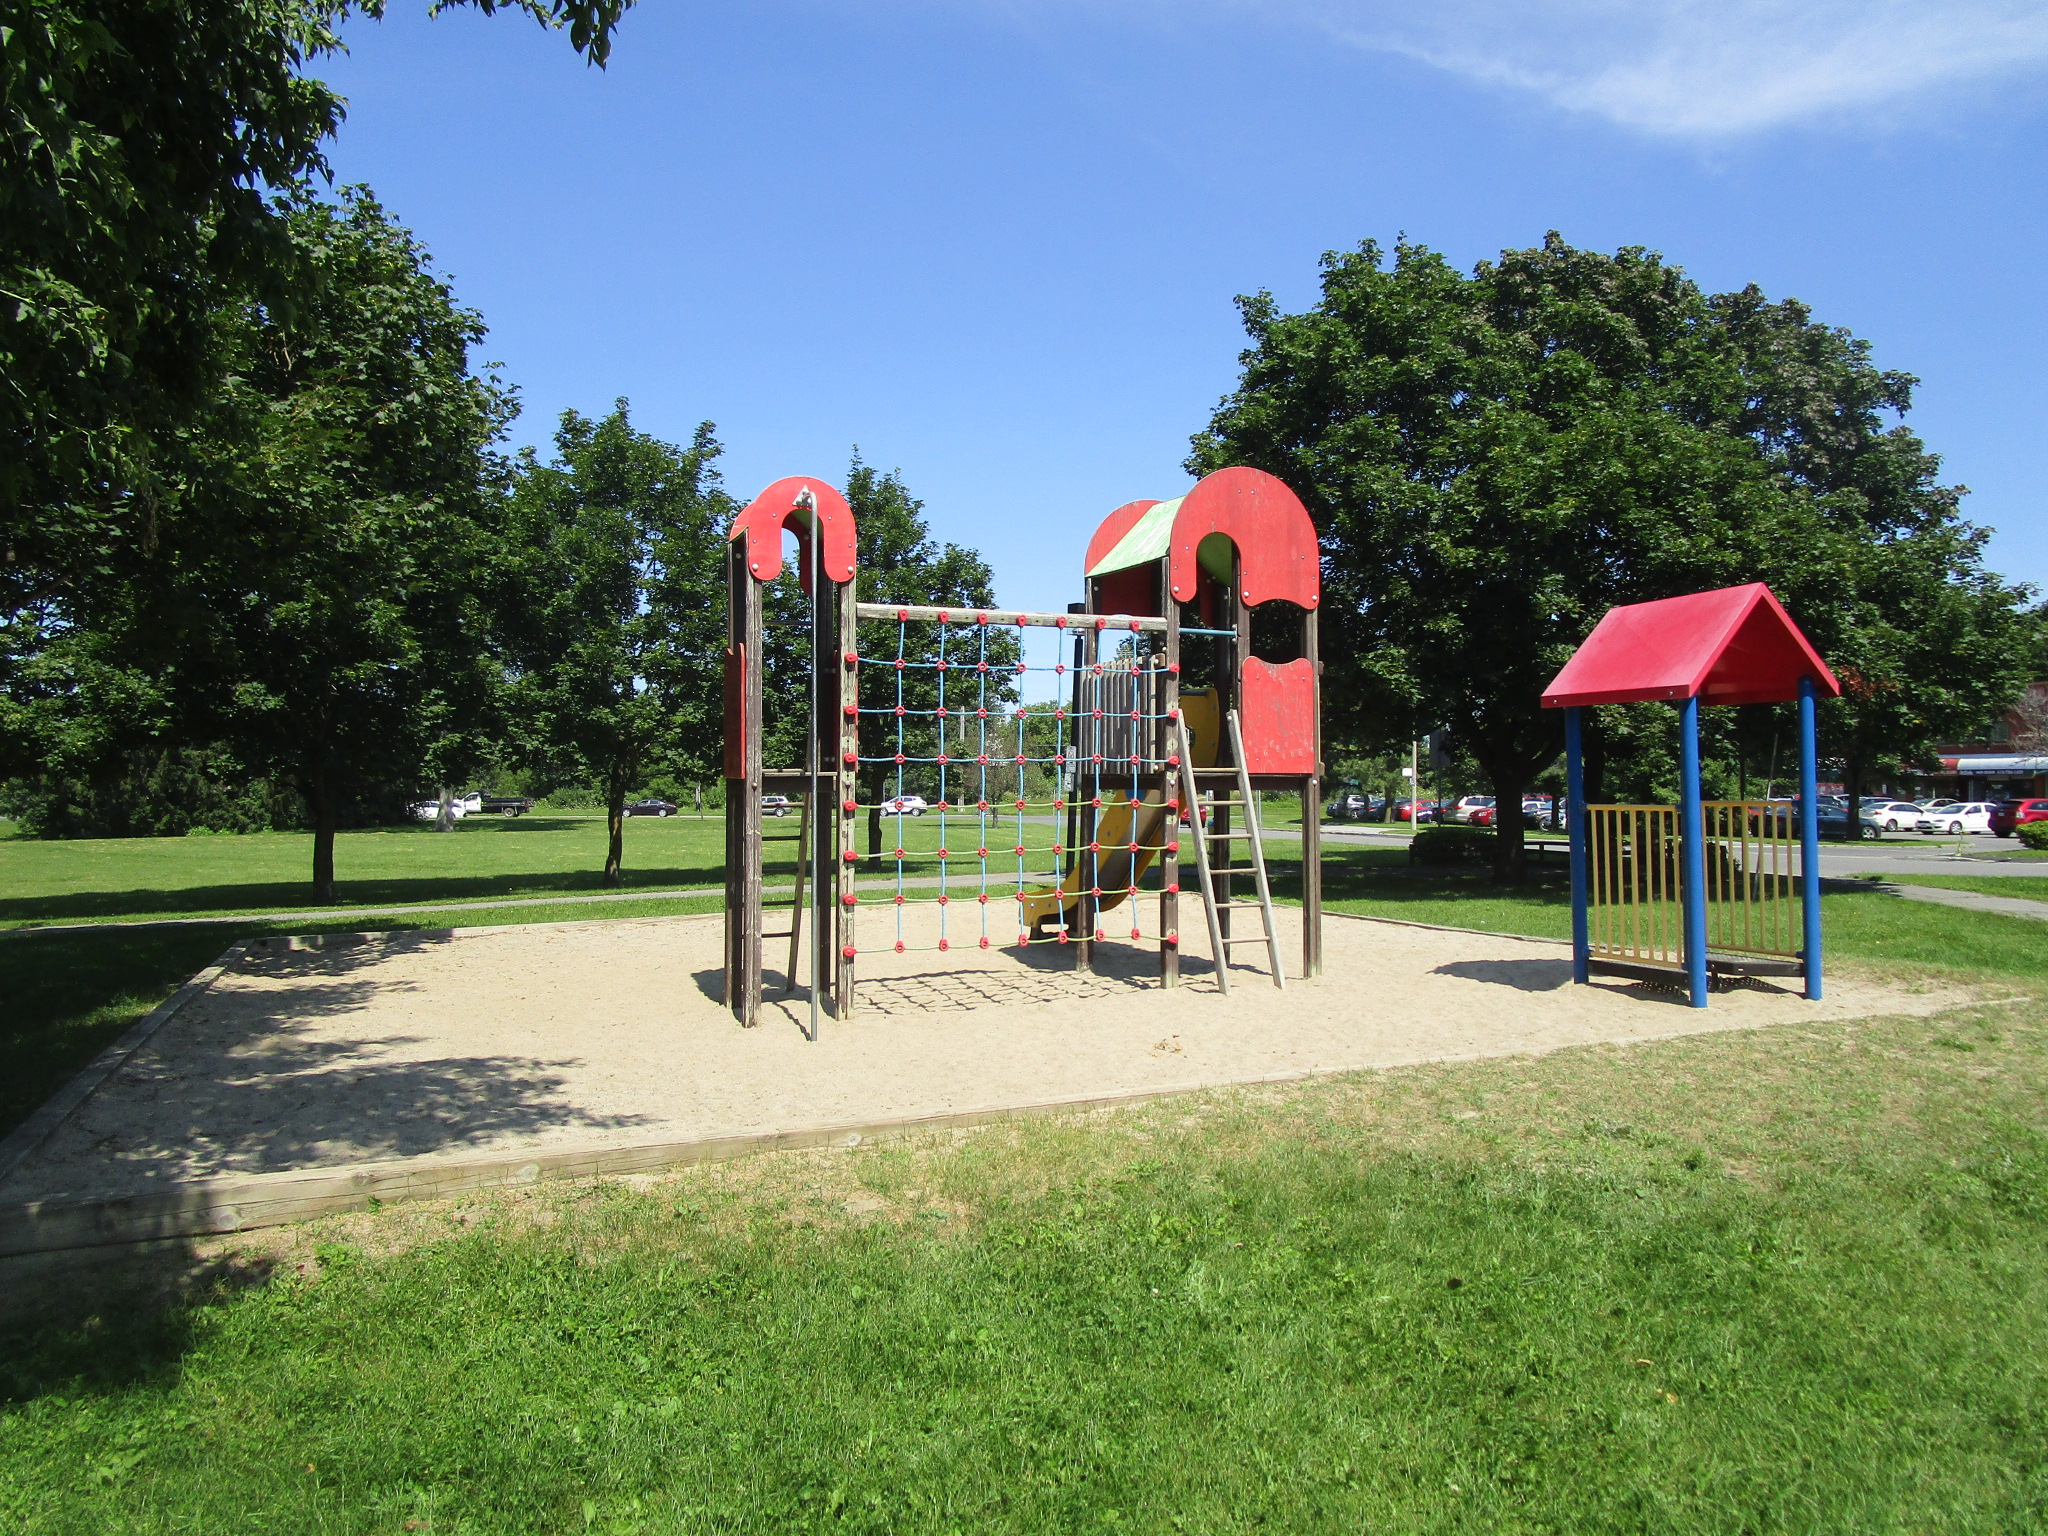 The existing play structure at Greenboro Pavilion Community Centre